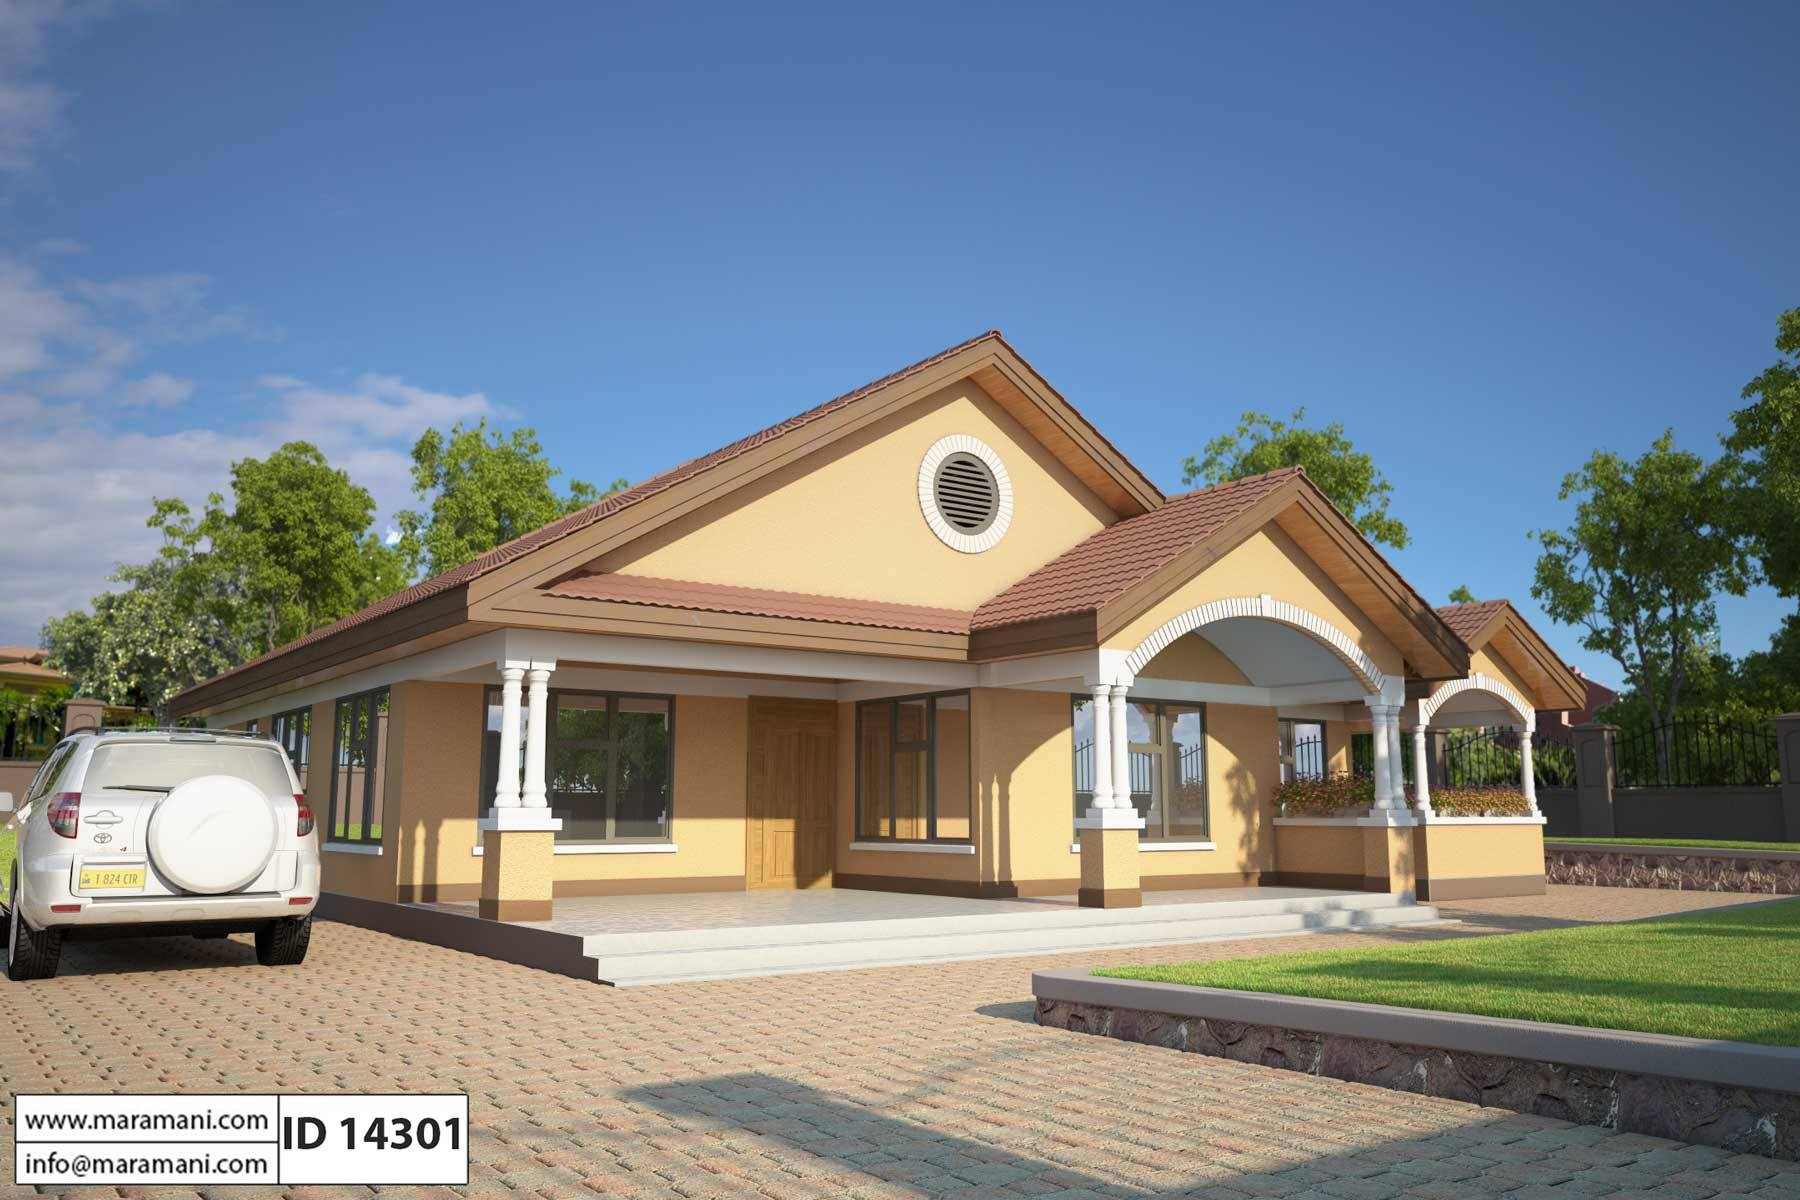 4 bedroom house plan id 14301 - Four Bedroom House Plans